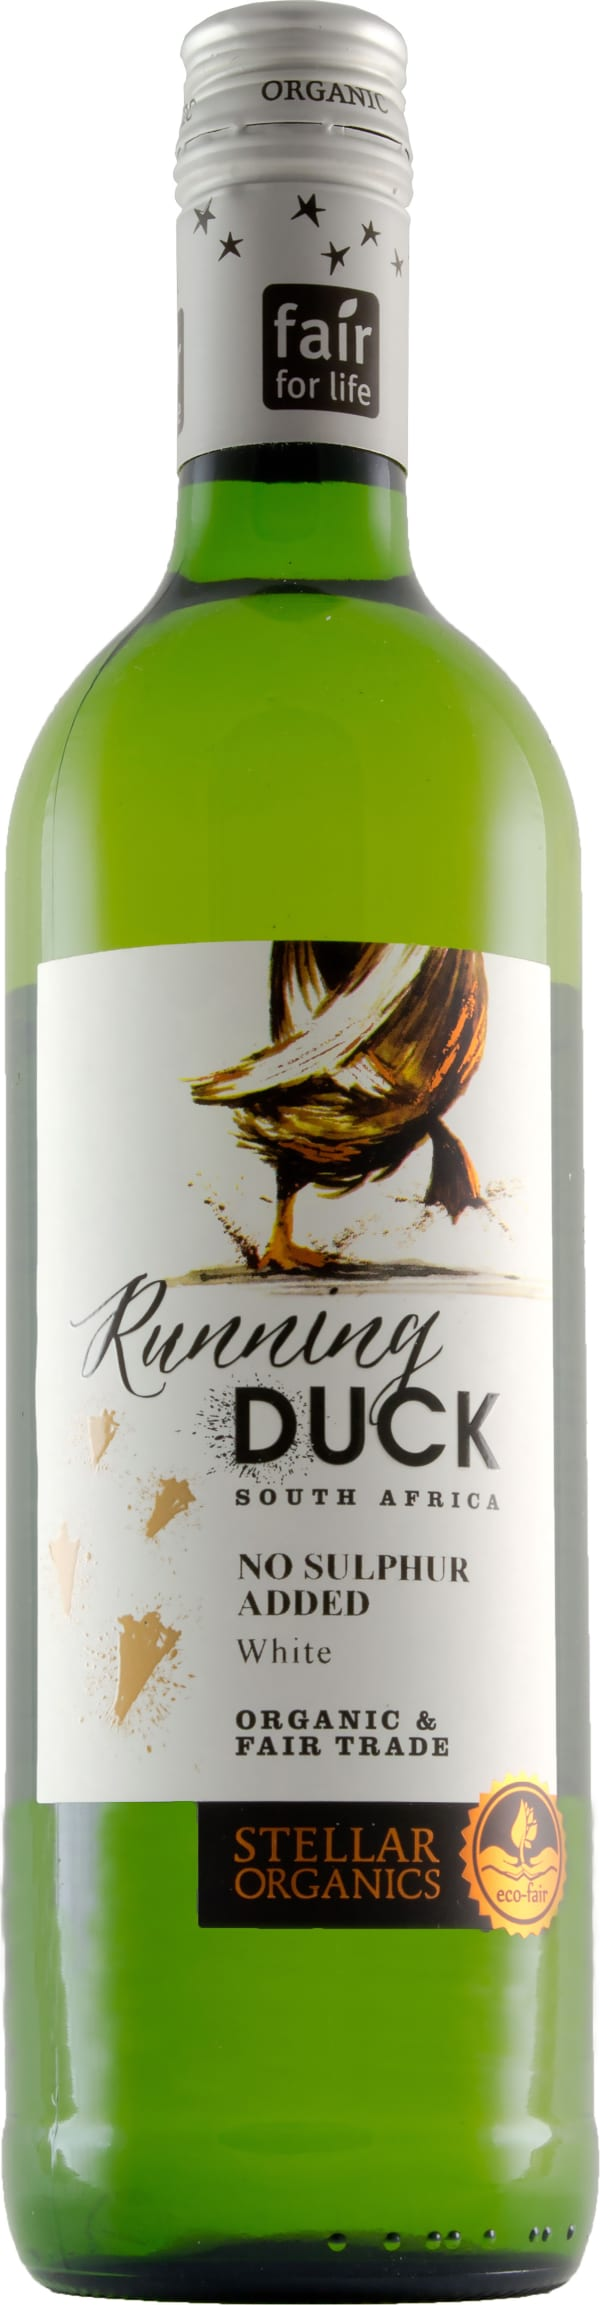 Running Duck White 2018